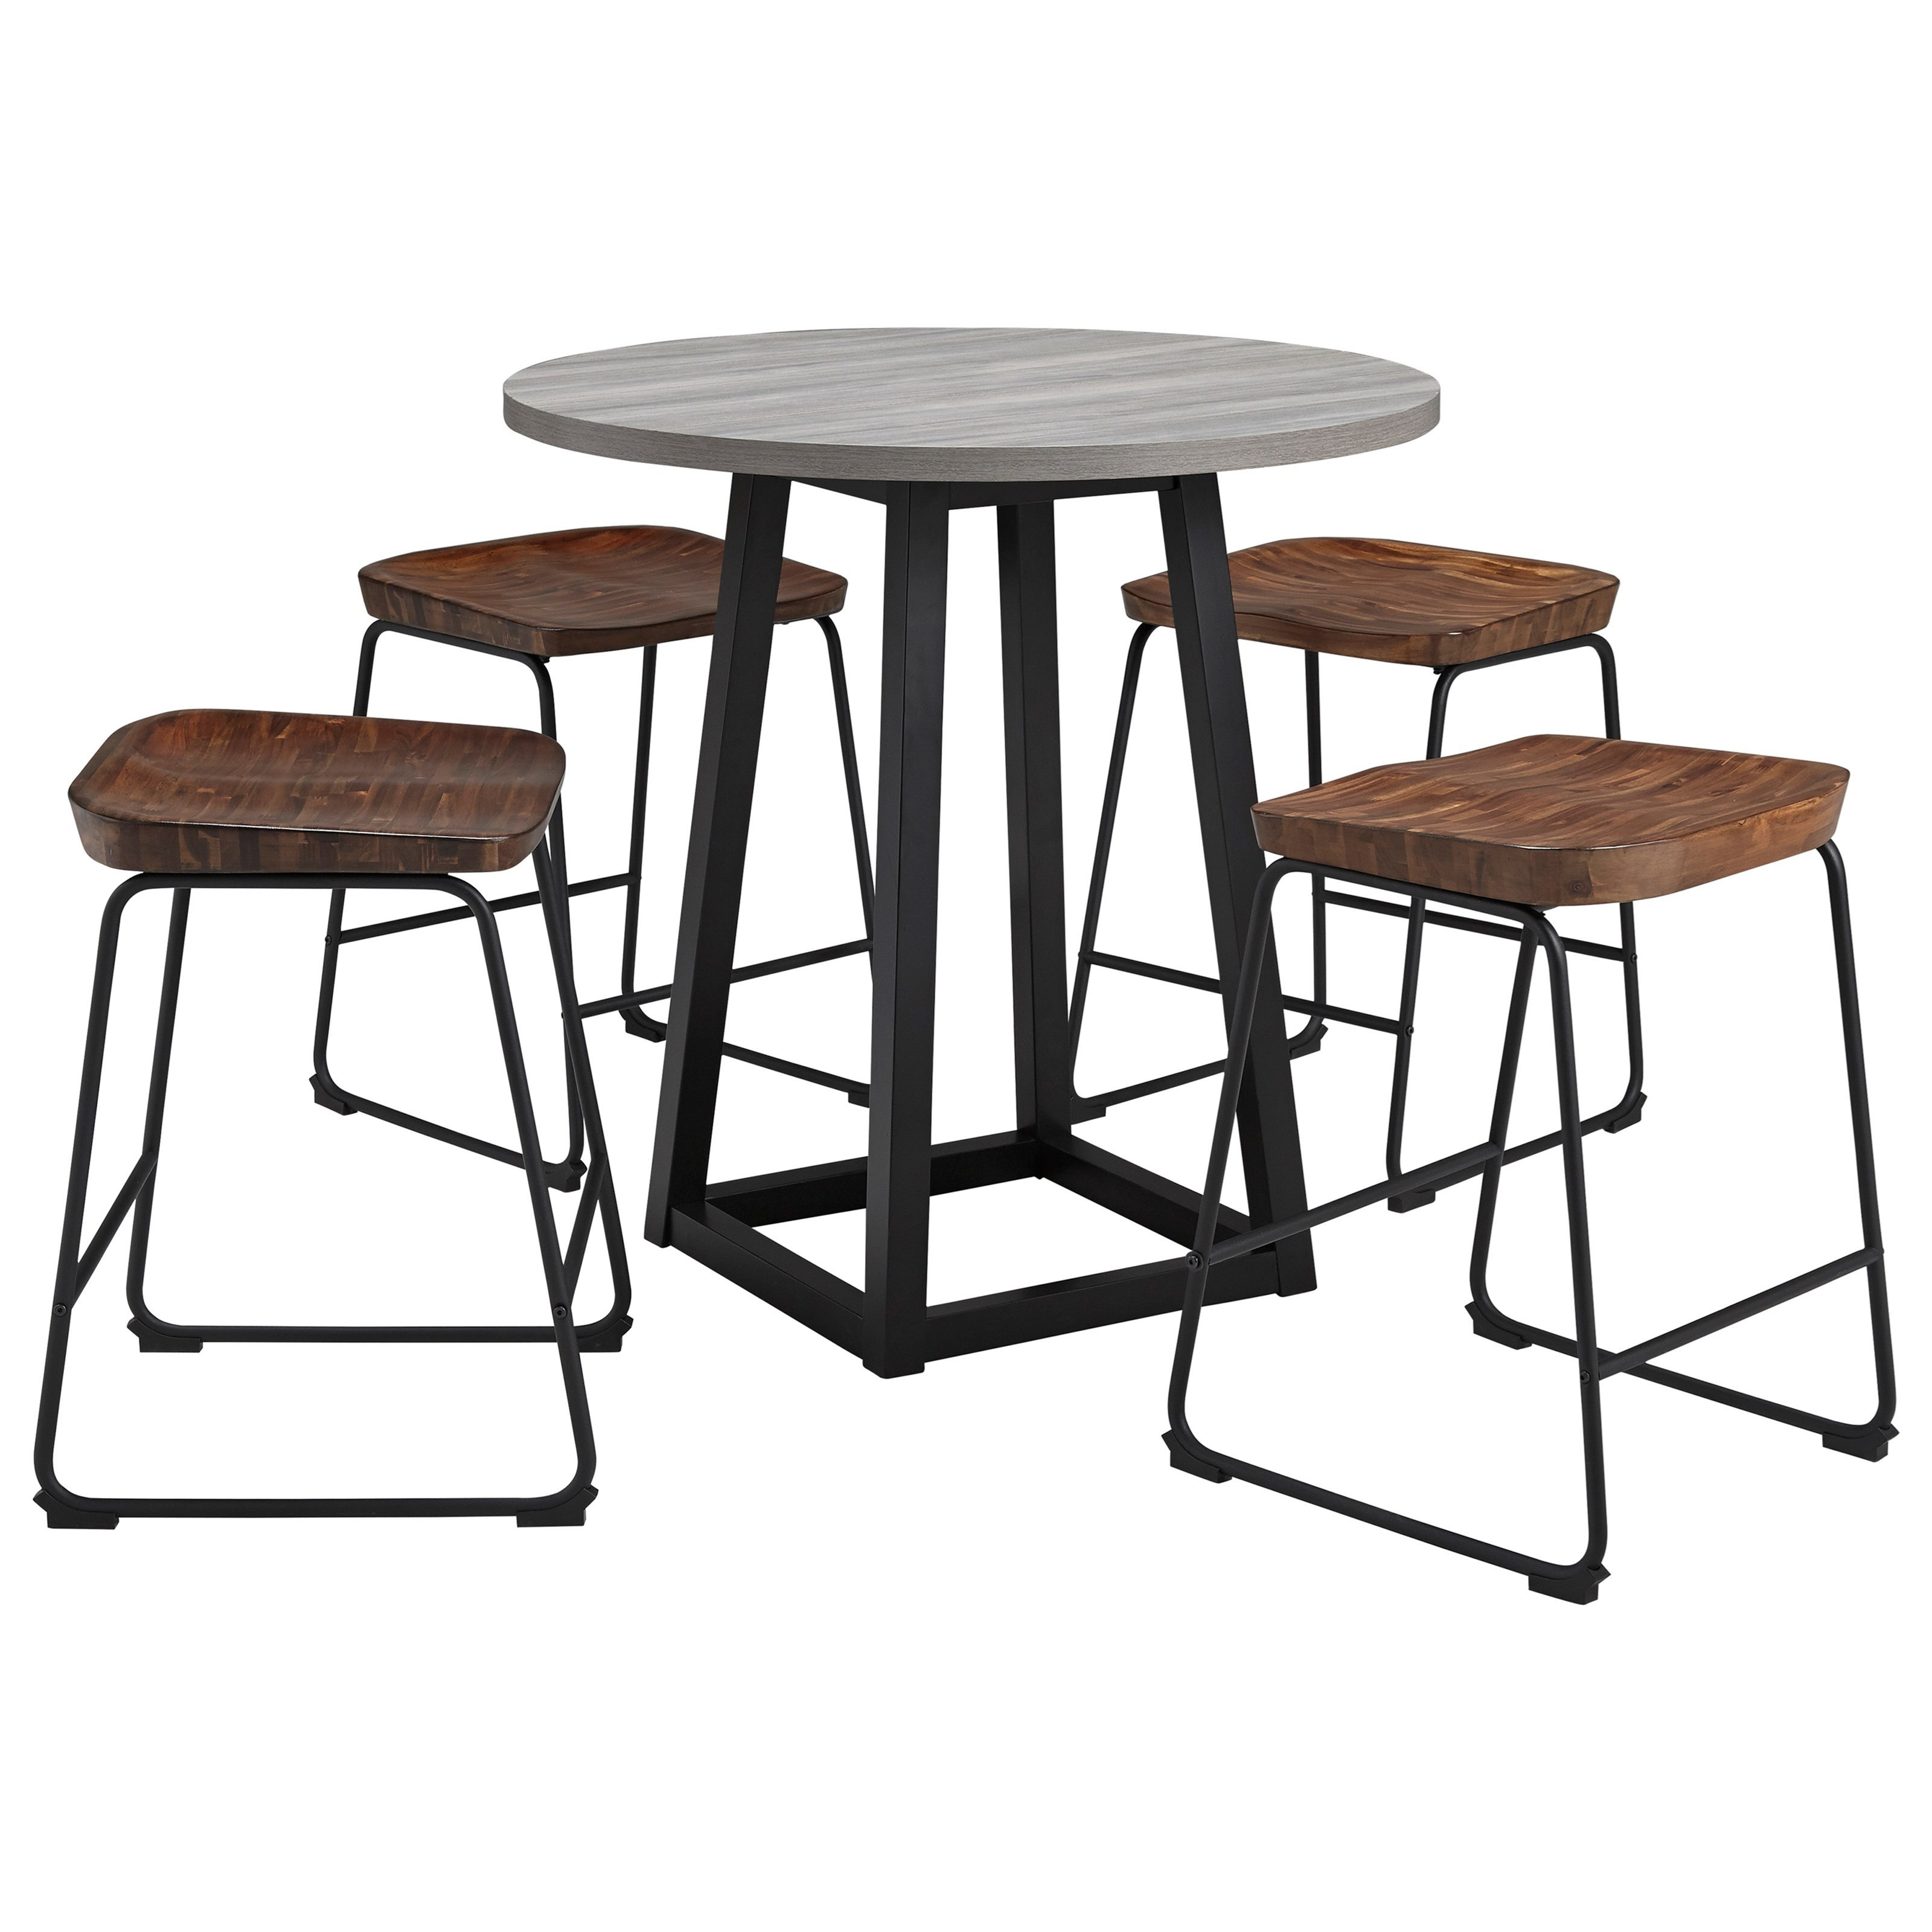 Ashley Furniture Signature Design Showdell 5 Piece Counter Height Dining Table Set Del Sol Furniture Pub Table And Stool Sets